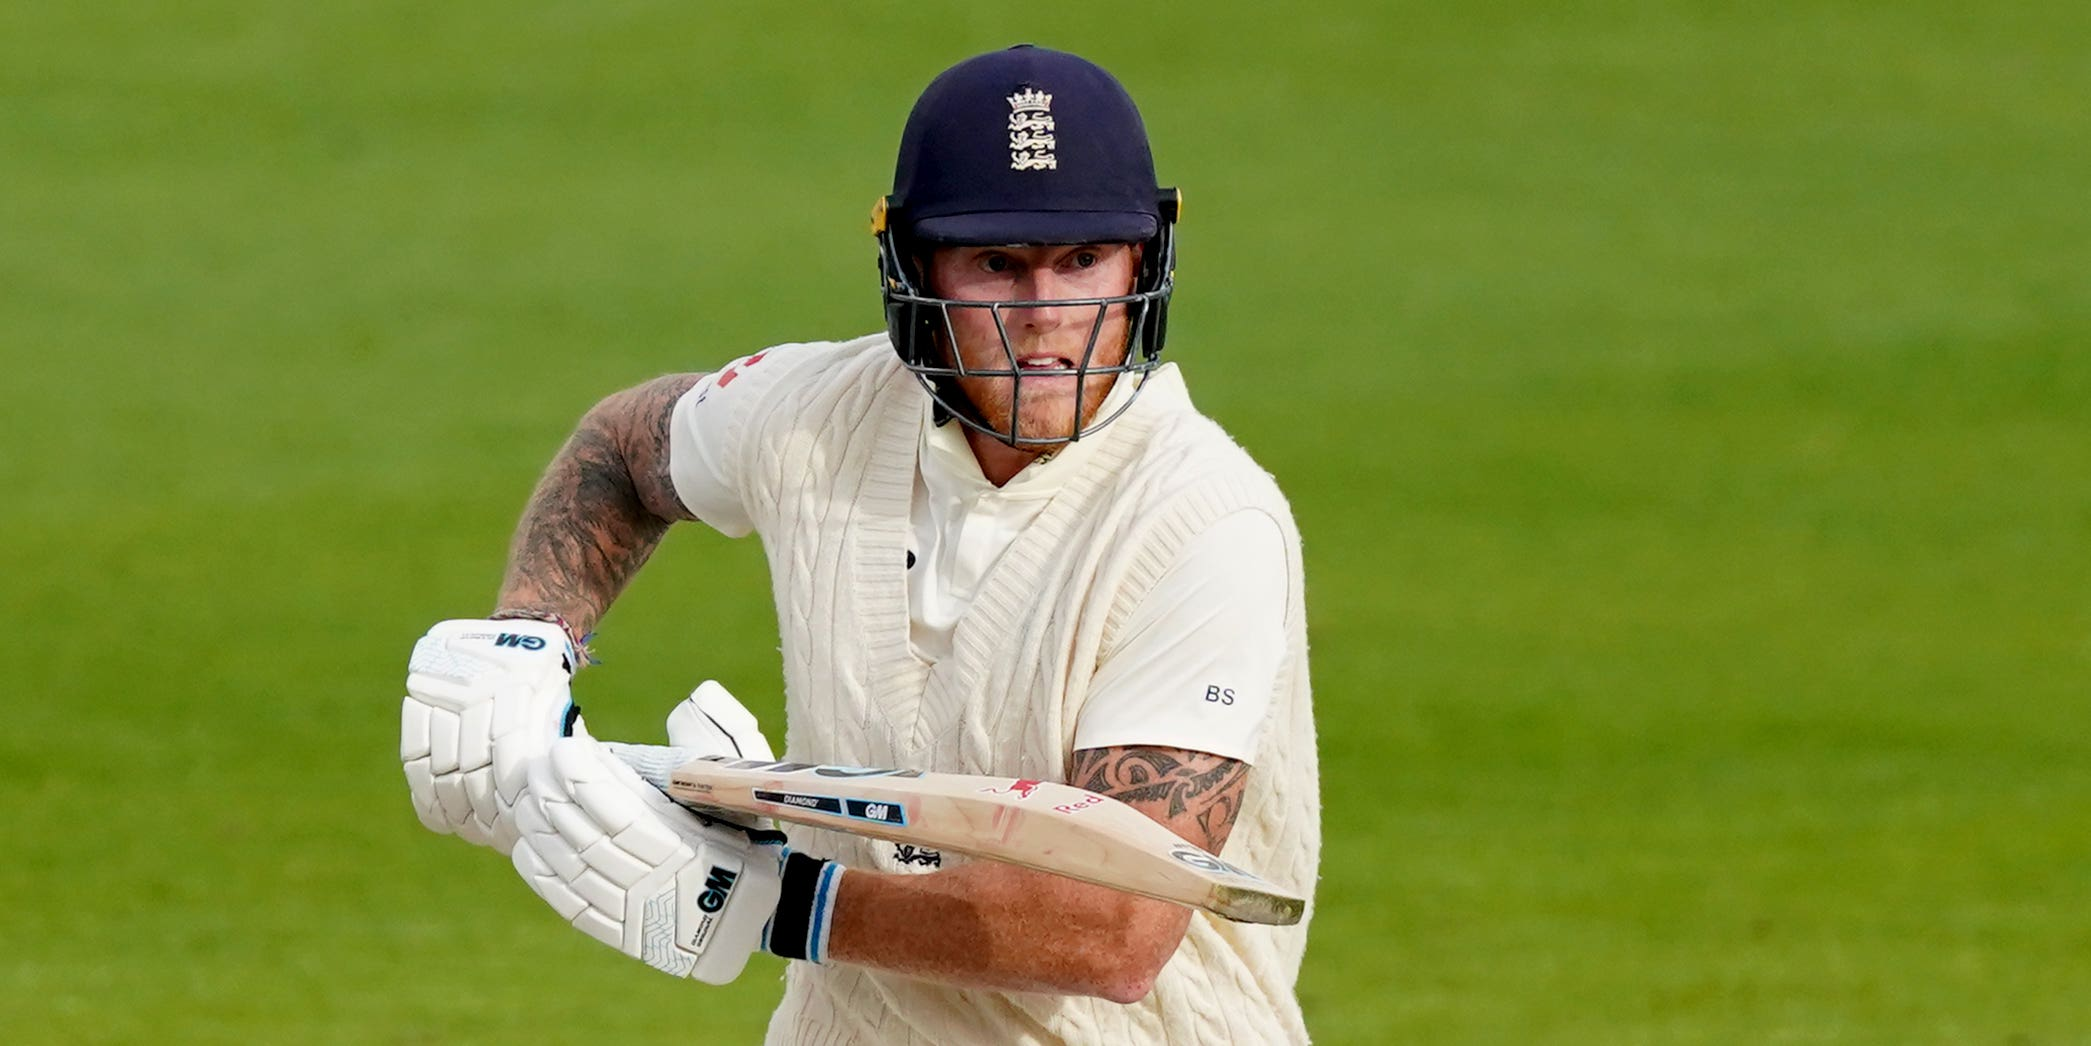 England All-rounder Ben Stokes doubt for the T20 World Cup